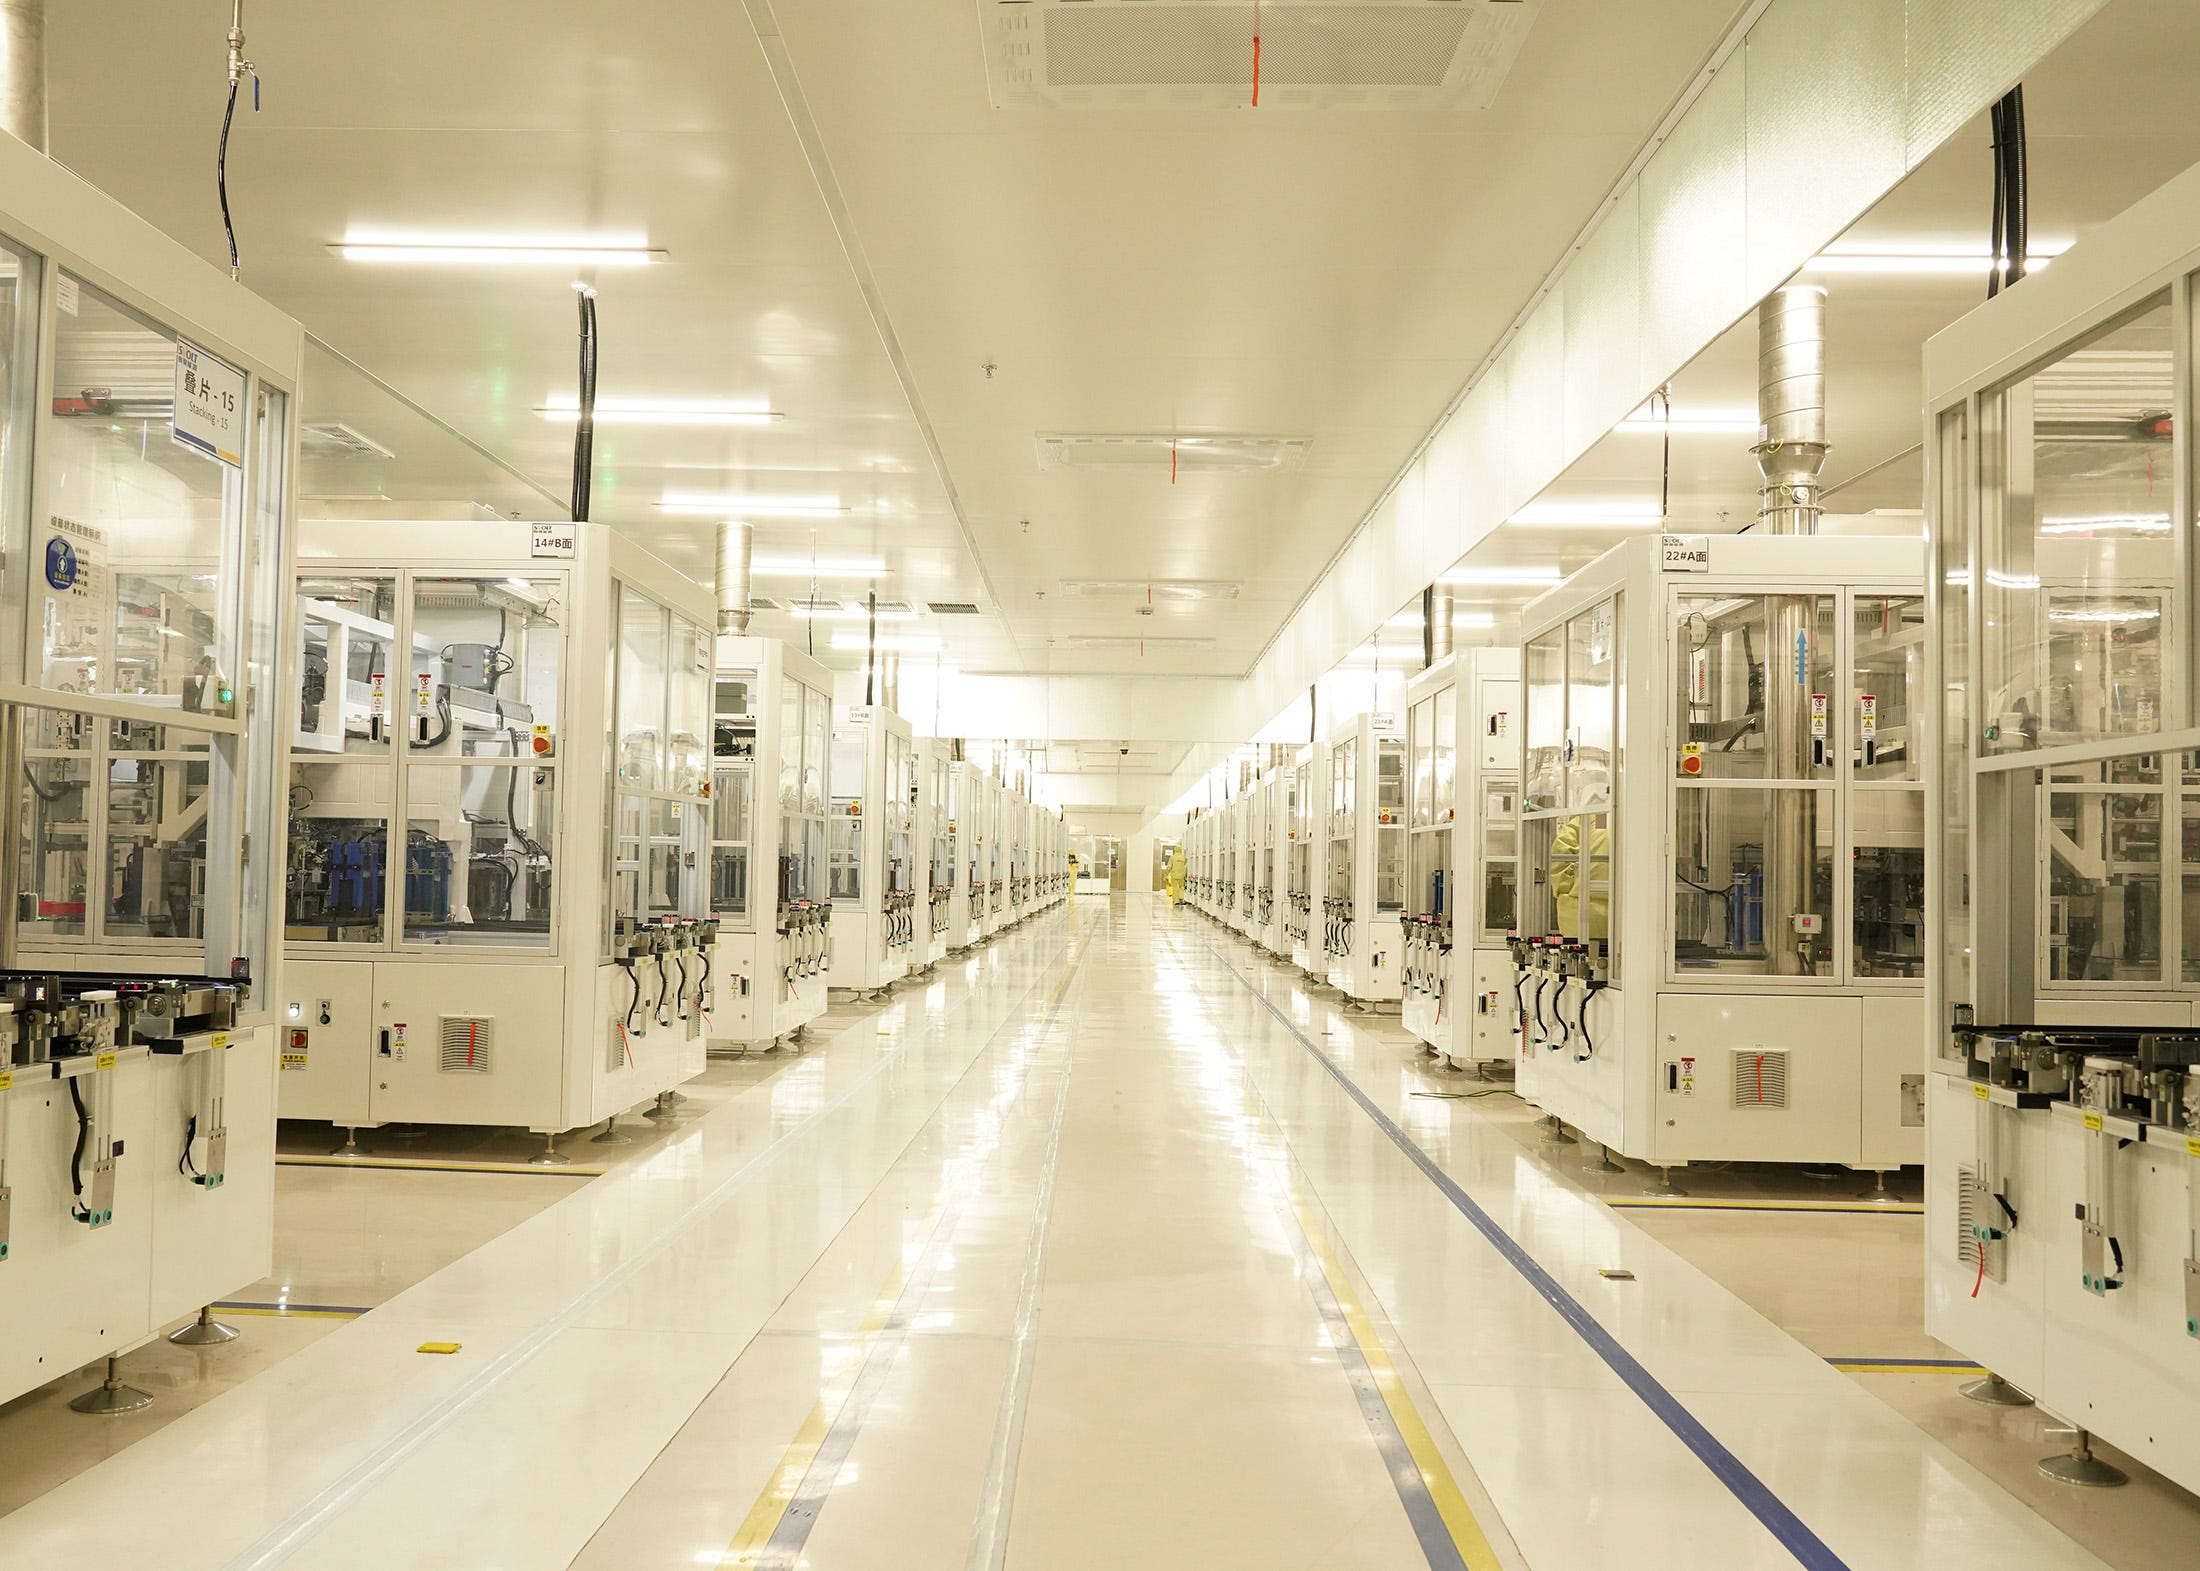 Chinais home to more than 75% of all battery production capacity andaround 80% of global refining capacity for EV minerals. Seen here is SVolt's battery factory in Changzhou.